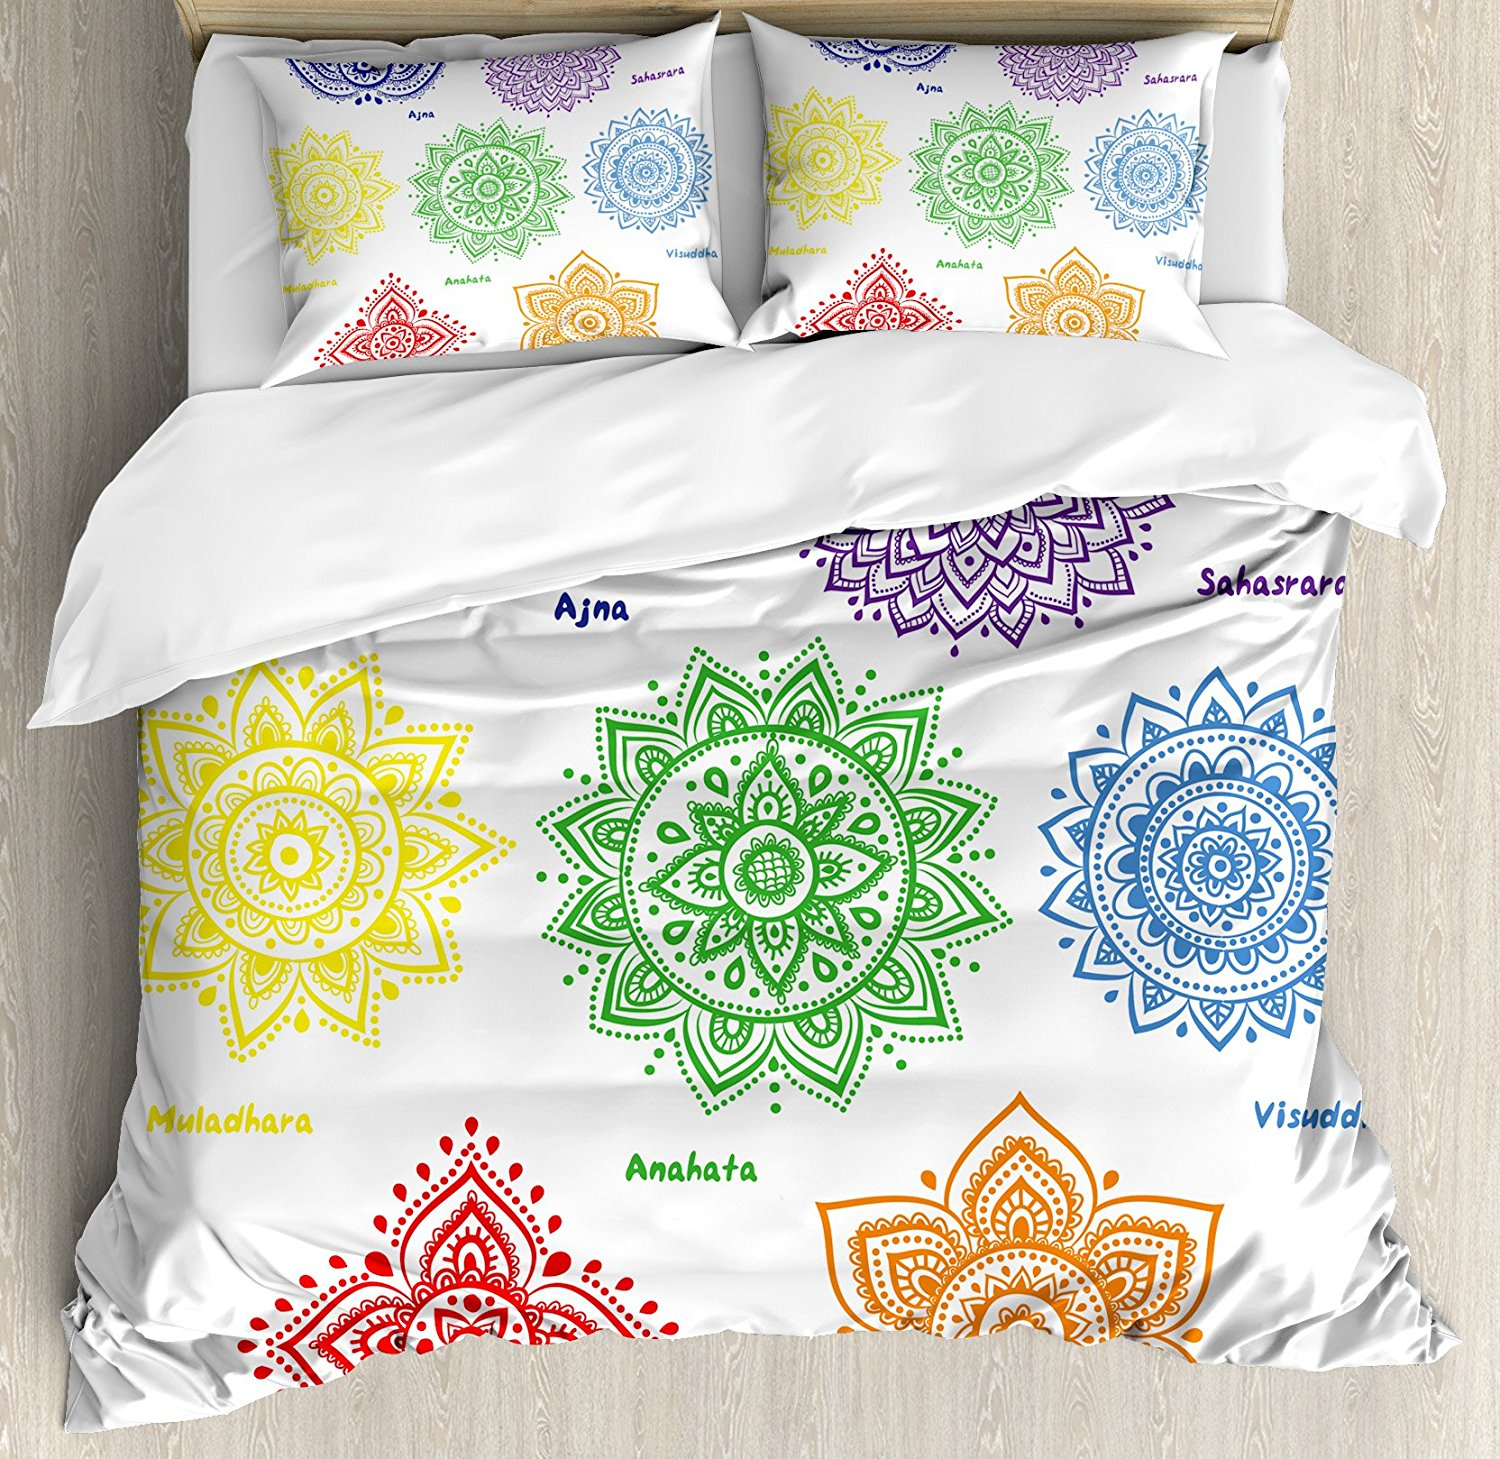 Chakra Duvet Cover Set Collection of Symbols in Different Colors with Ornate Round Mandala Asian Print Bedding Set Multicolor